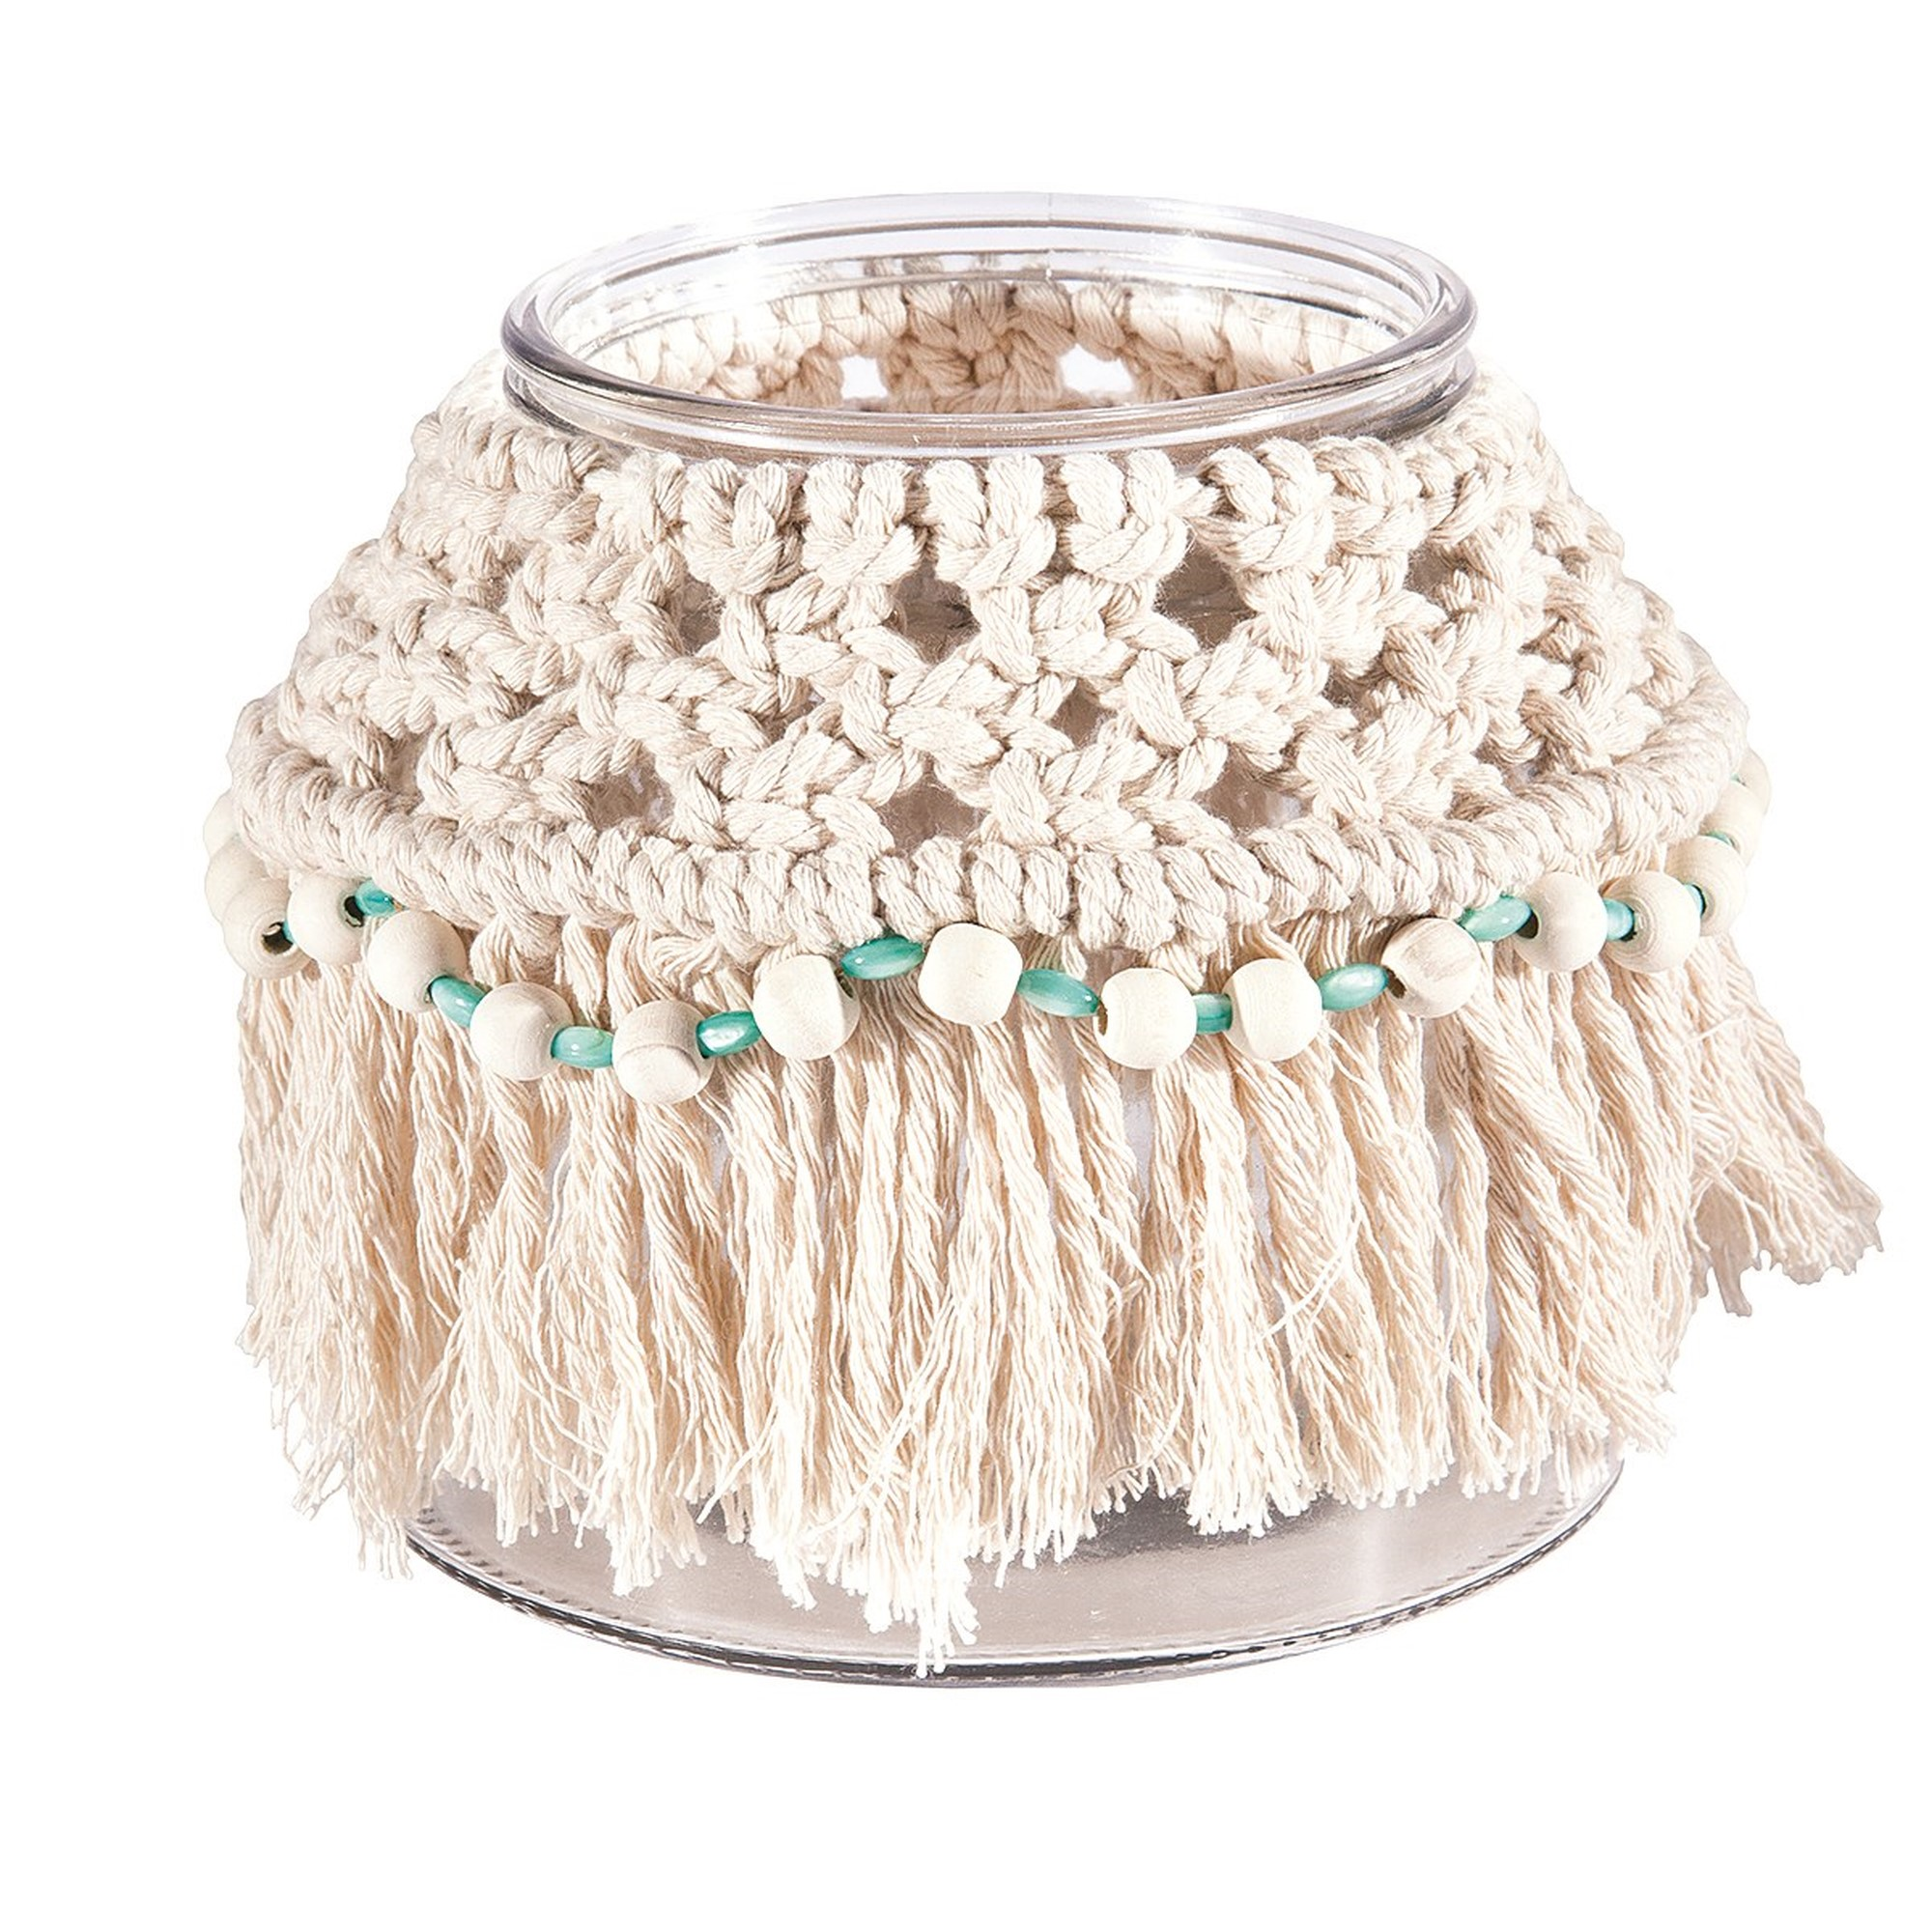 Glass Hurricane with Natural Macrame Cover, Amanda's House Of Elegance  ($28.95)